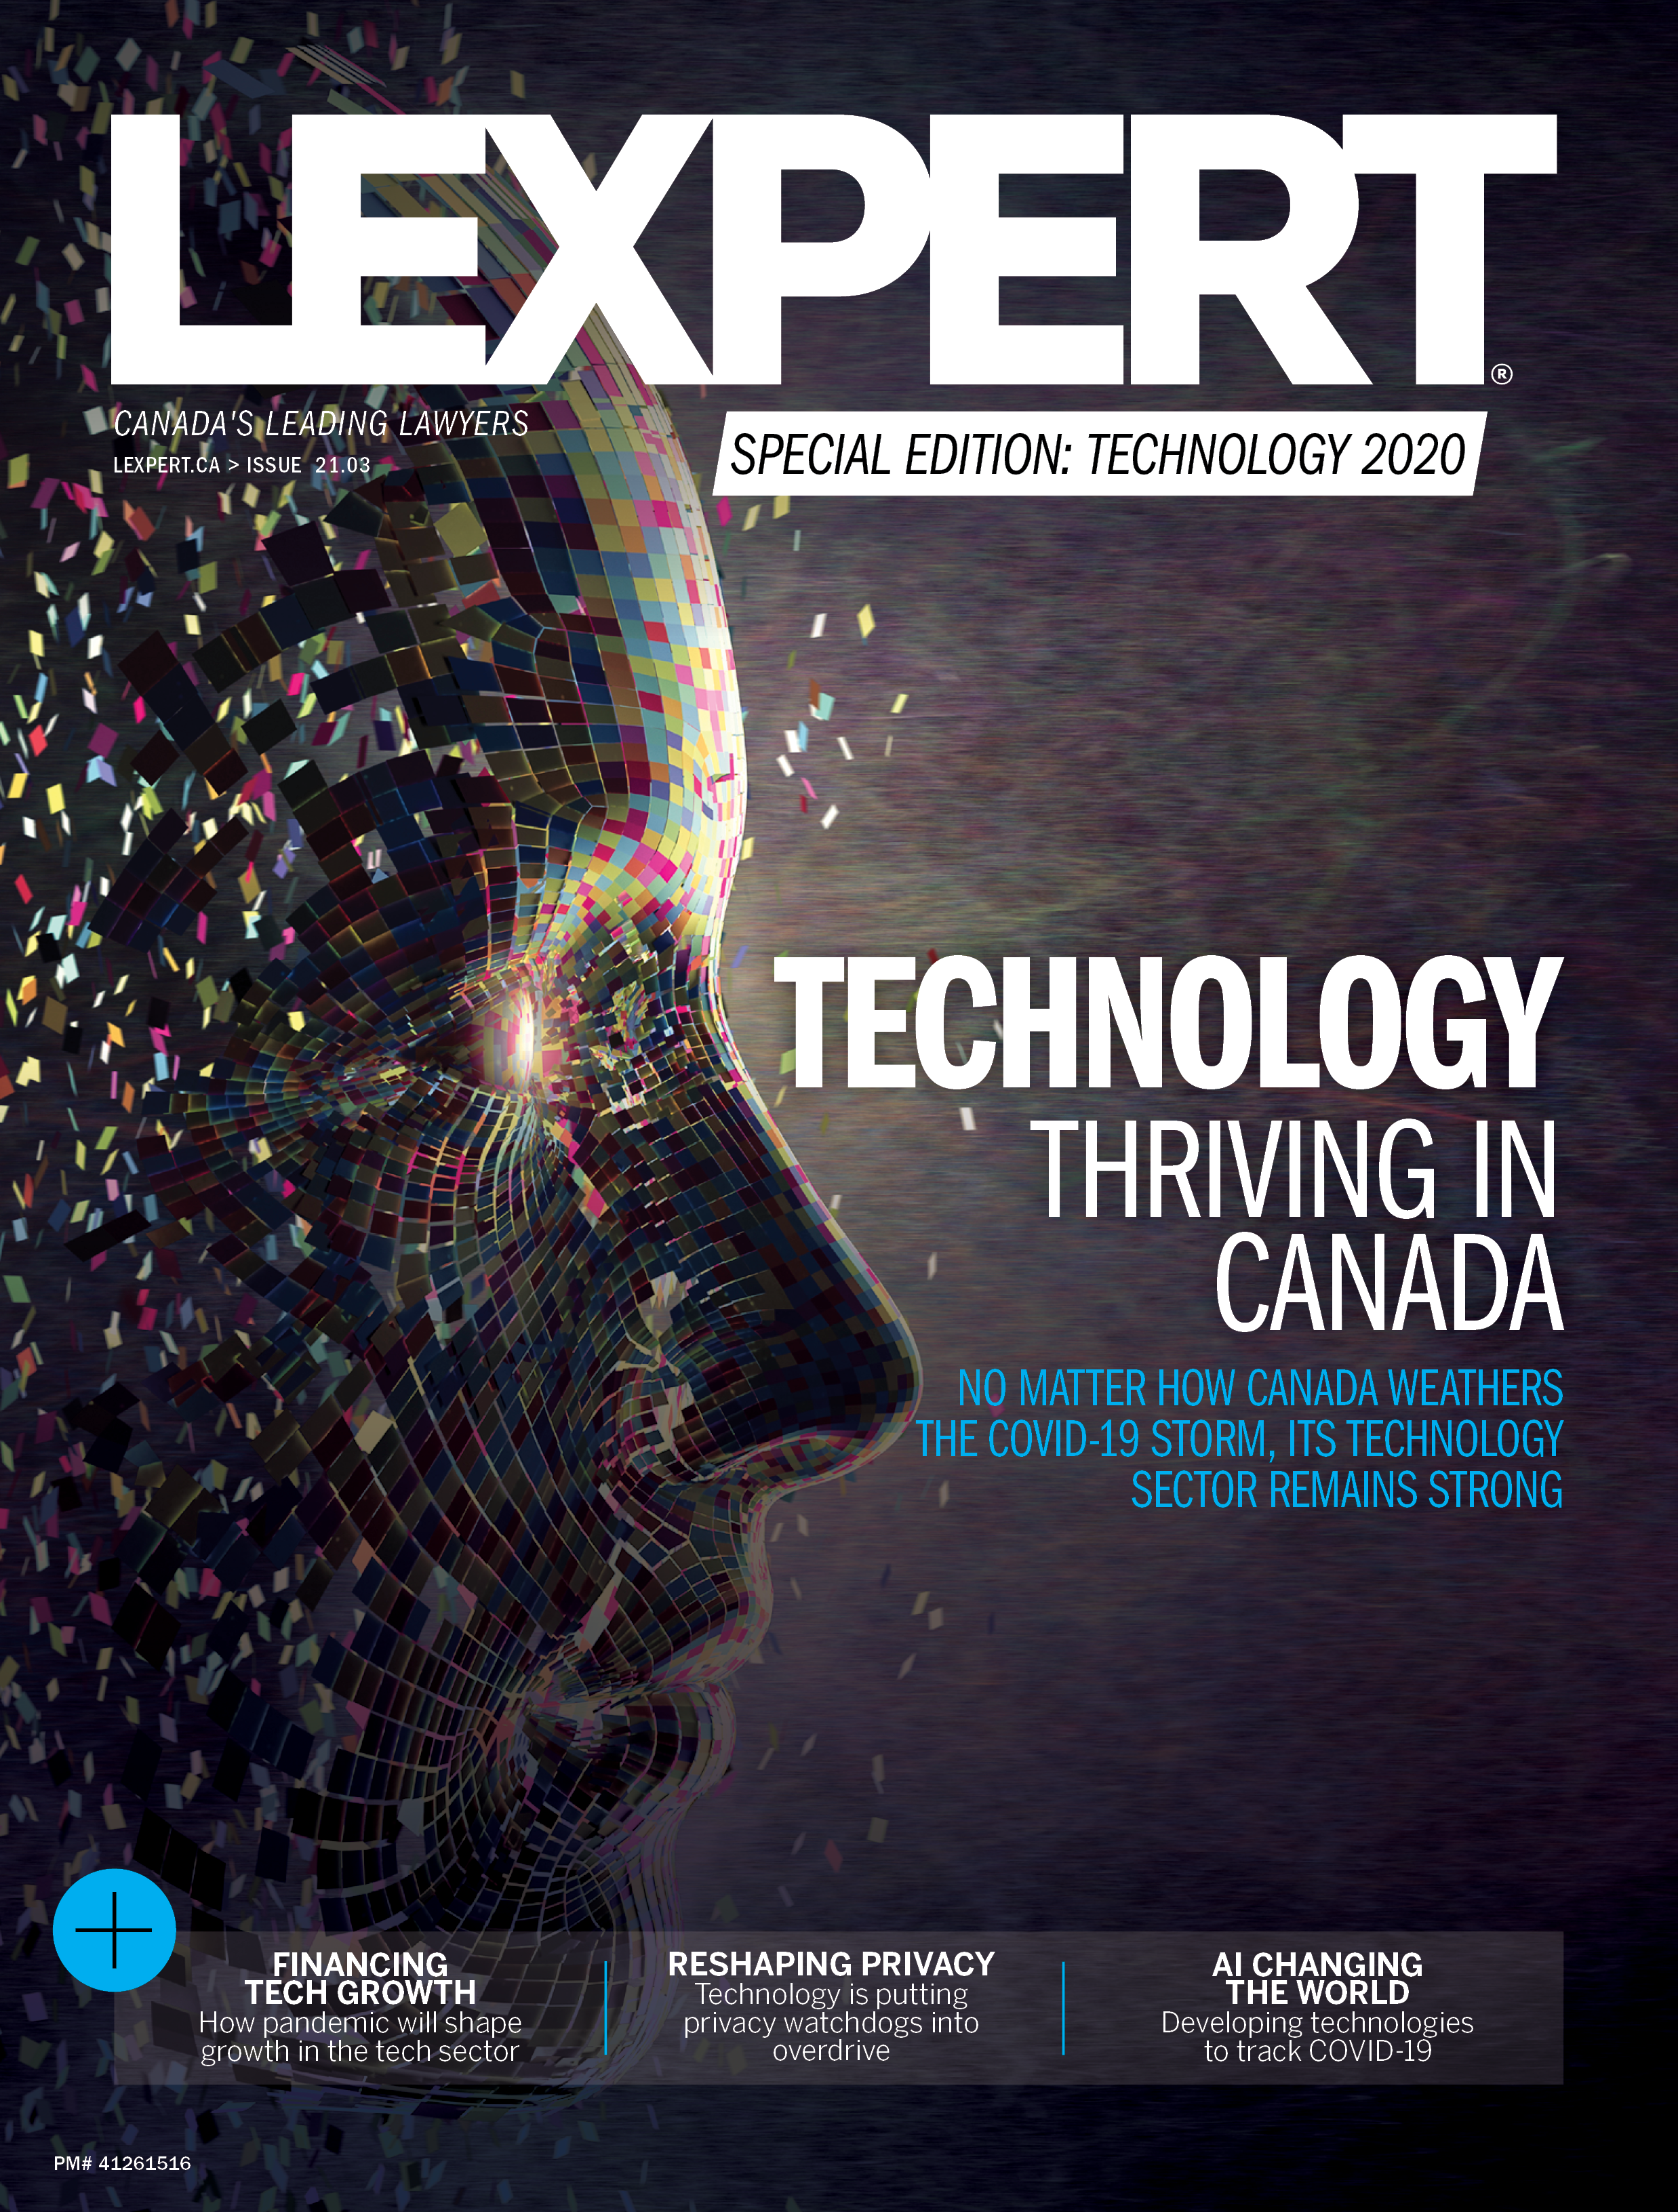 Lexpert Publishes Special Edition: Technology 2020